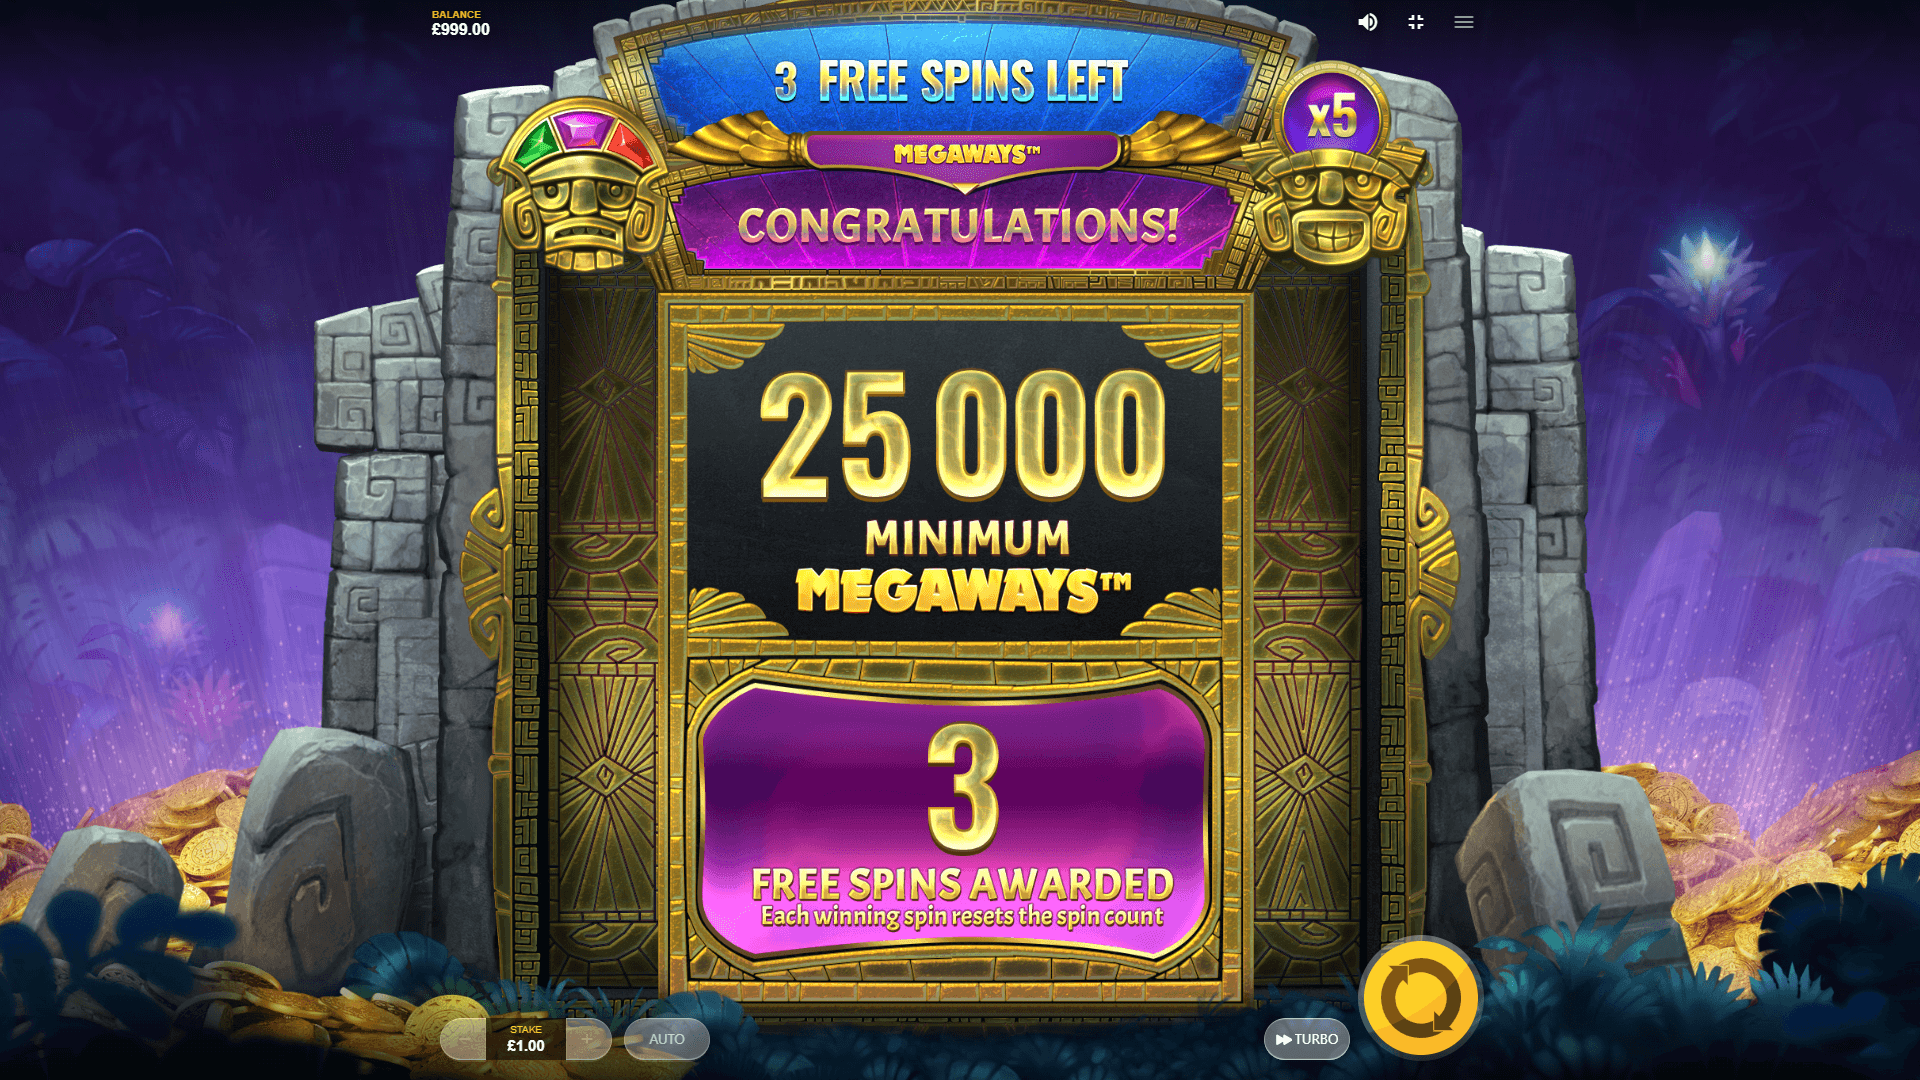 AI_Free_Spins_Welcome_Screen